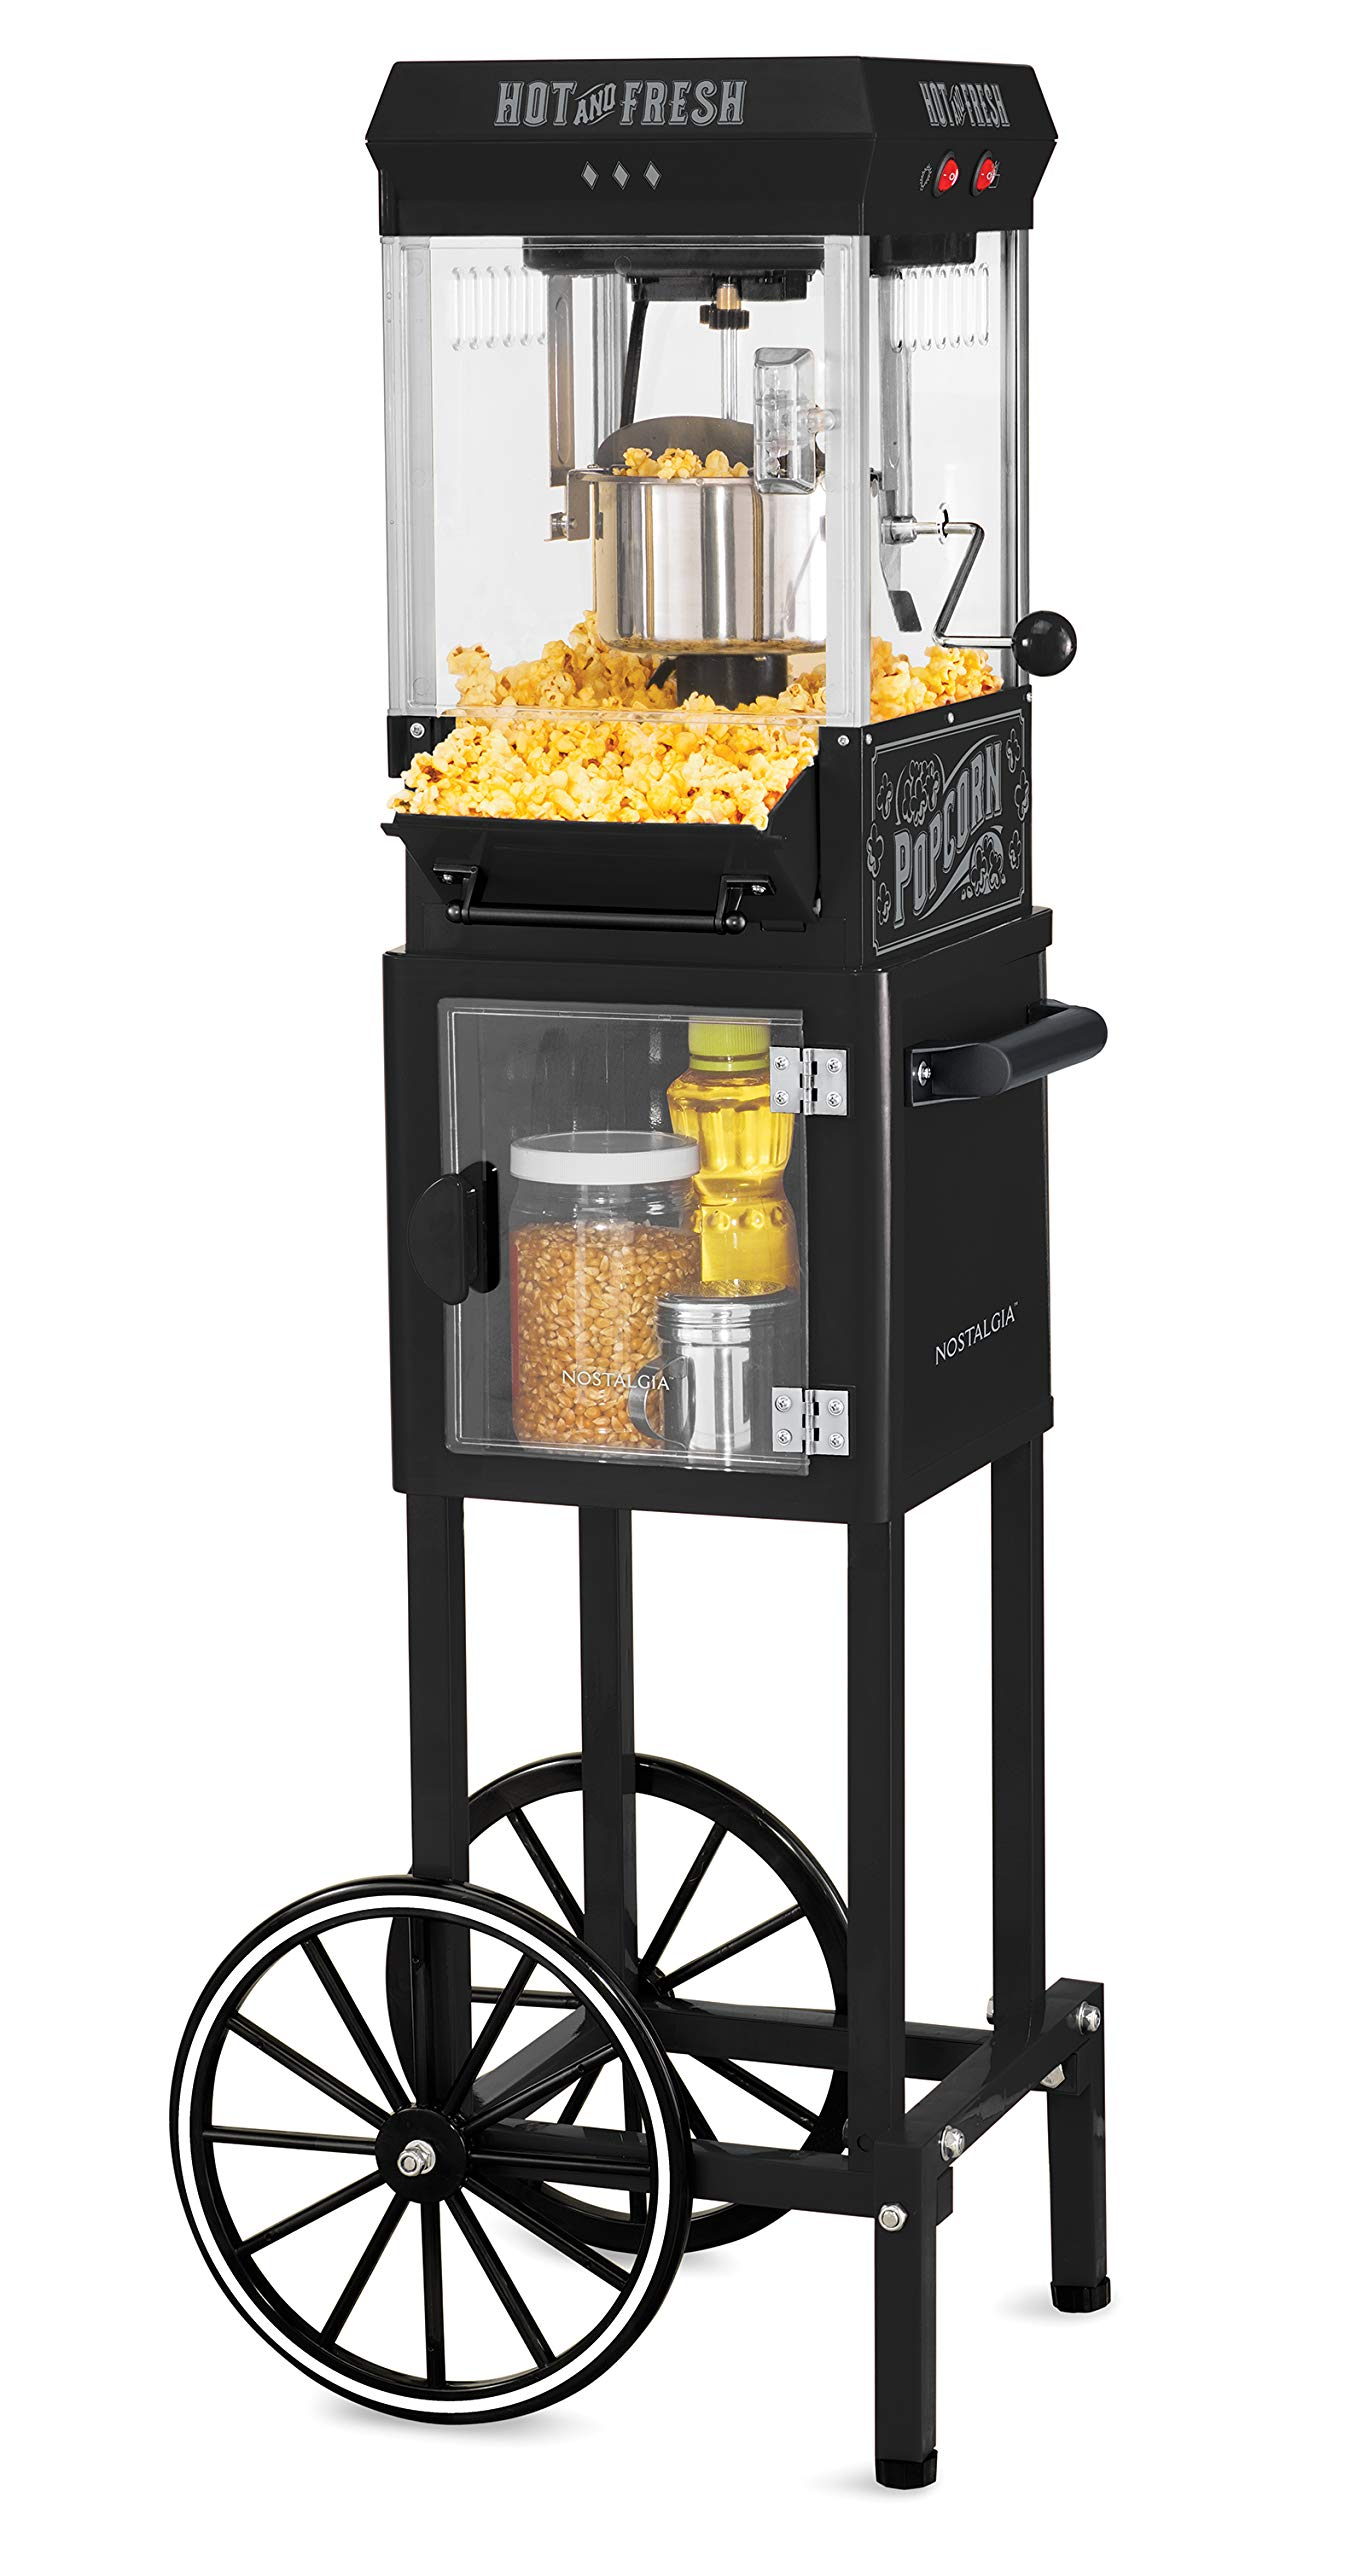 Nostalgia KPM220CTBK 2.5 Ounce Popcorn Cart, 10-Cup, with 5-Quart Popcorn Bowl, 45-Inches Tall by Nostalgia